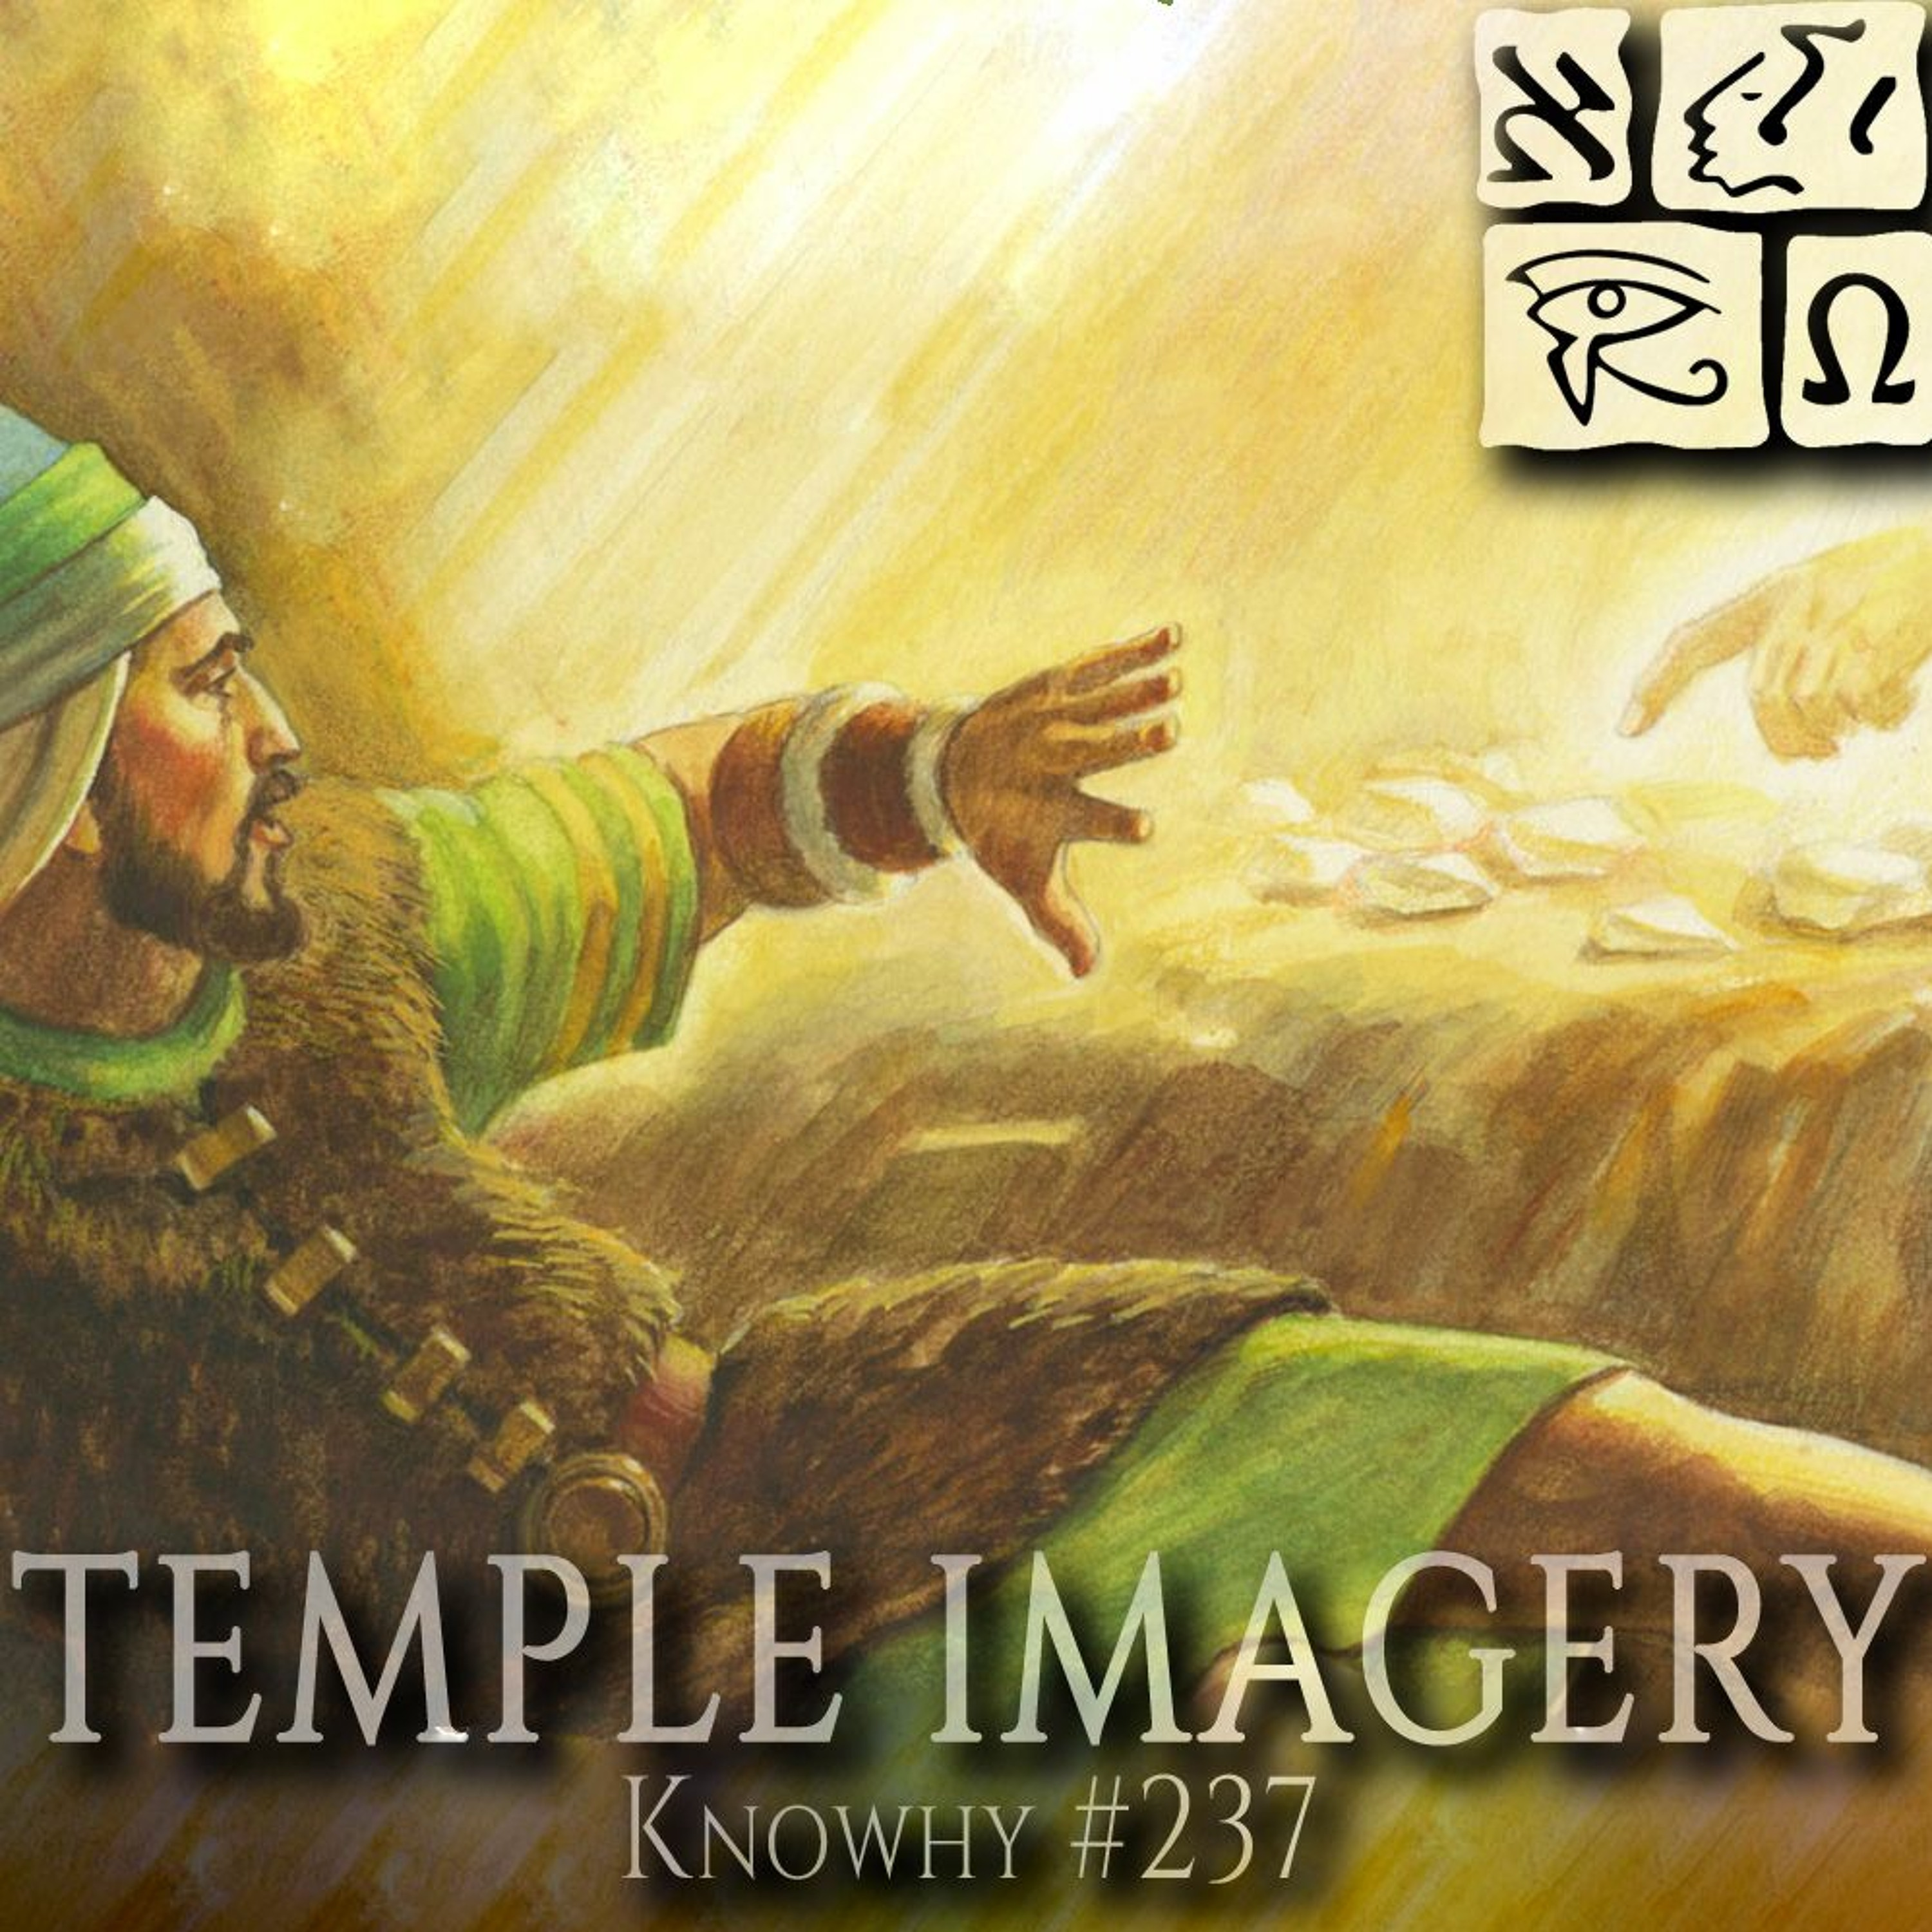 Why Did Moroni Use Temple Imagery...